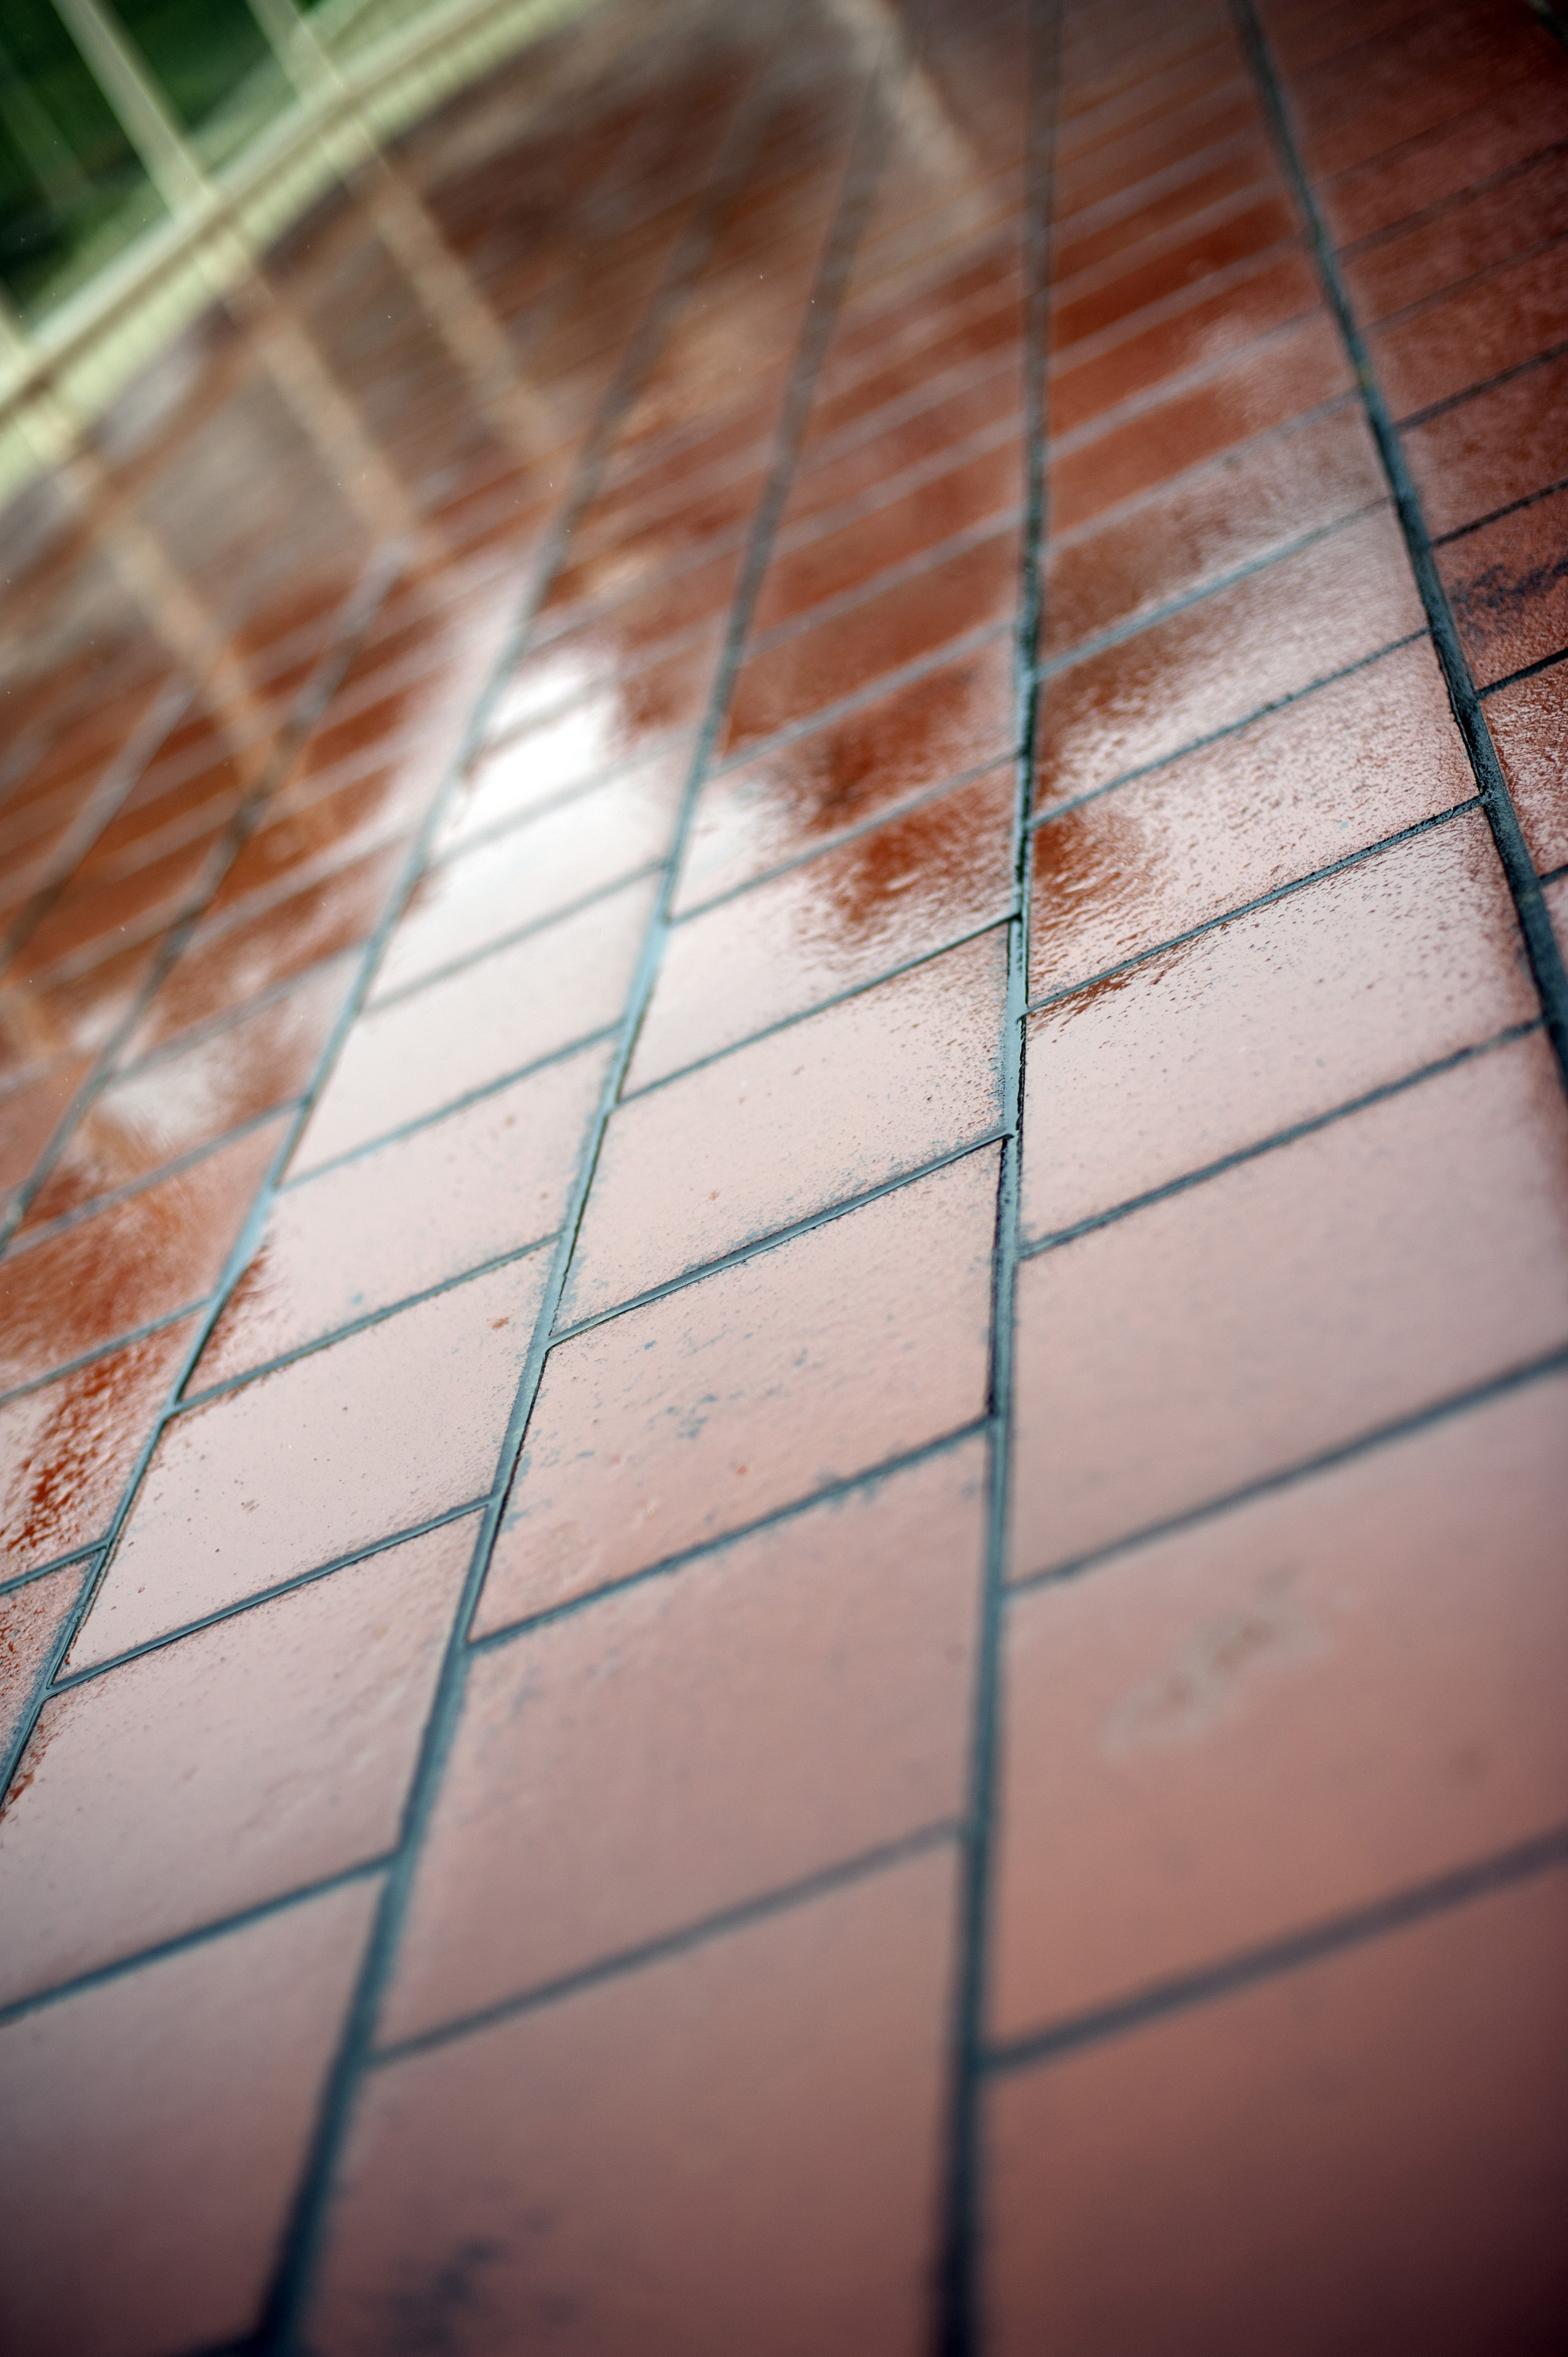 Wet red terracotta tiles outdoors on a rainy day viewed at an angle with reflections